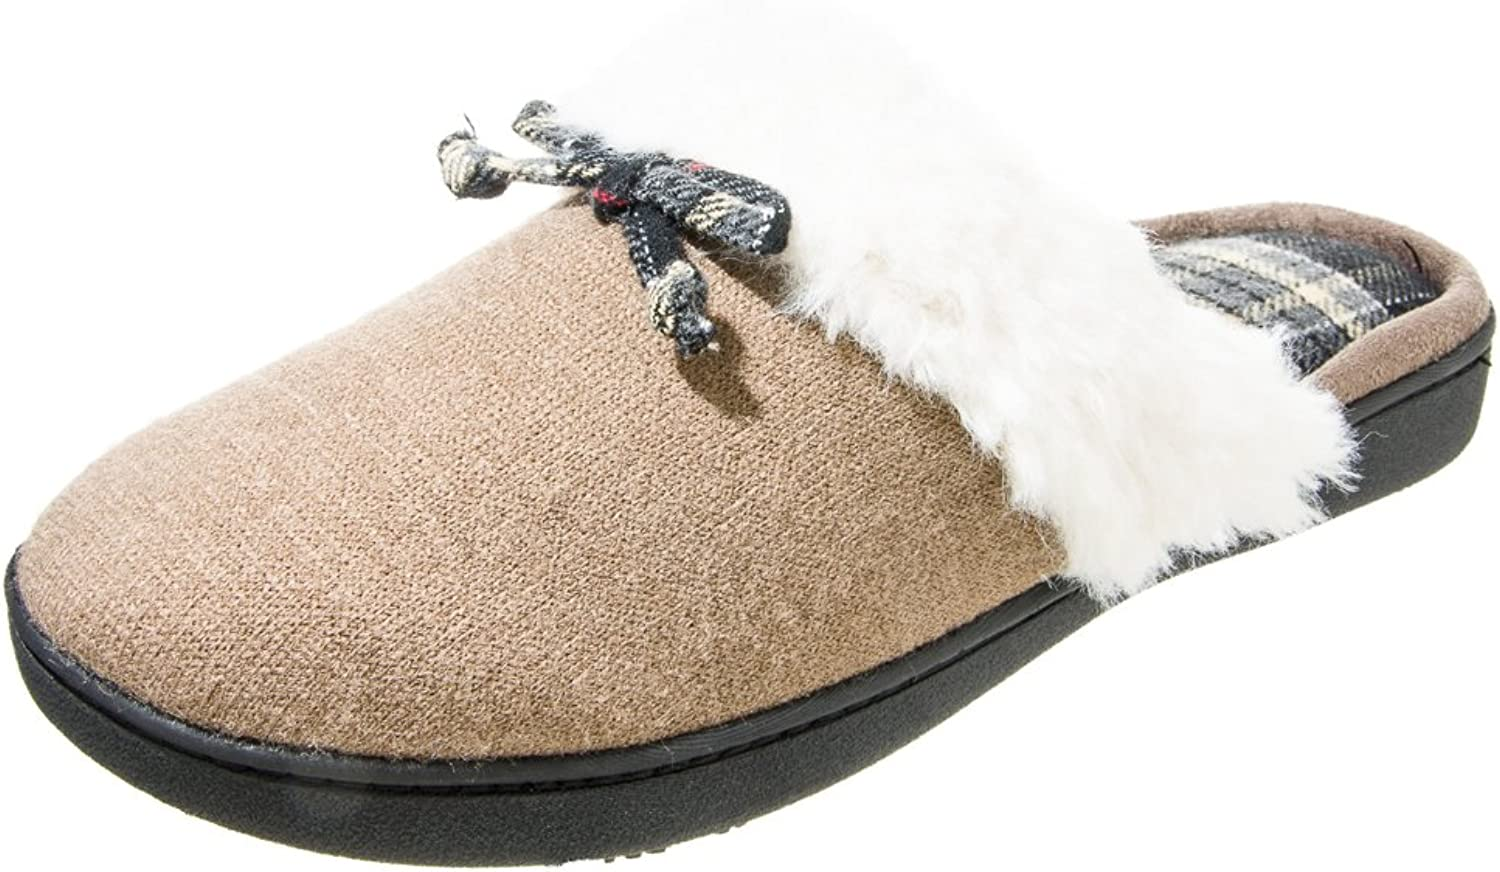 Isotoner Women's Brushed Sweater Knit Clog Slippers, Small, Smokey Taupe